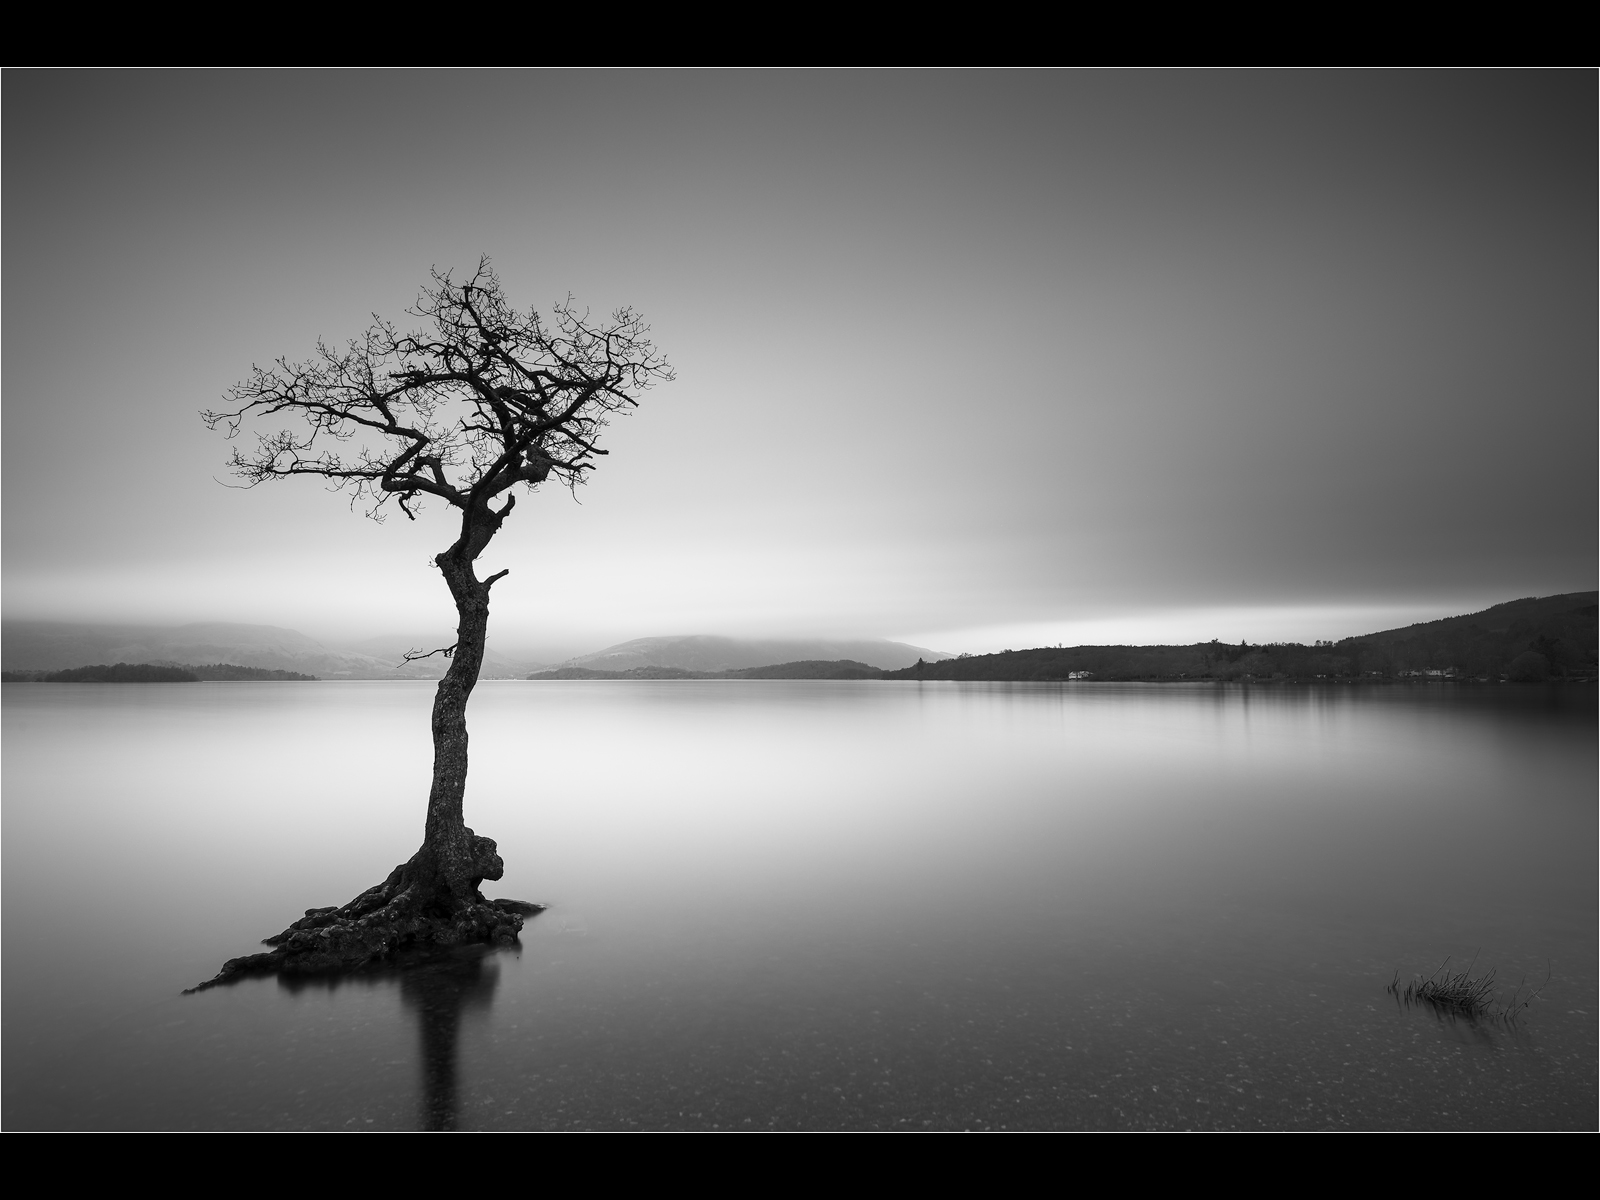 The_Lone_Tree_-_Loch_Lomond.jpg